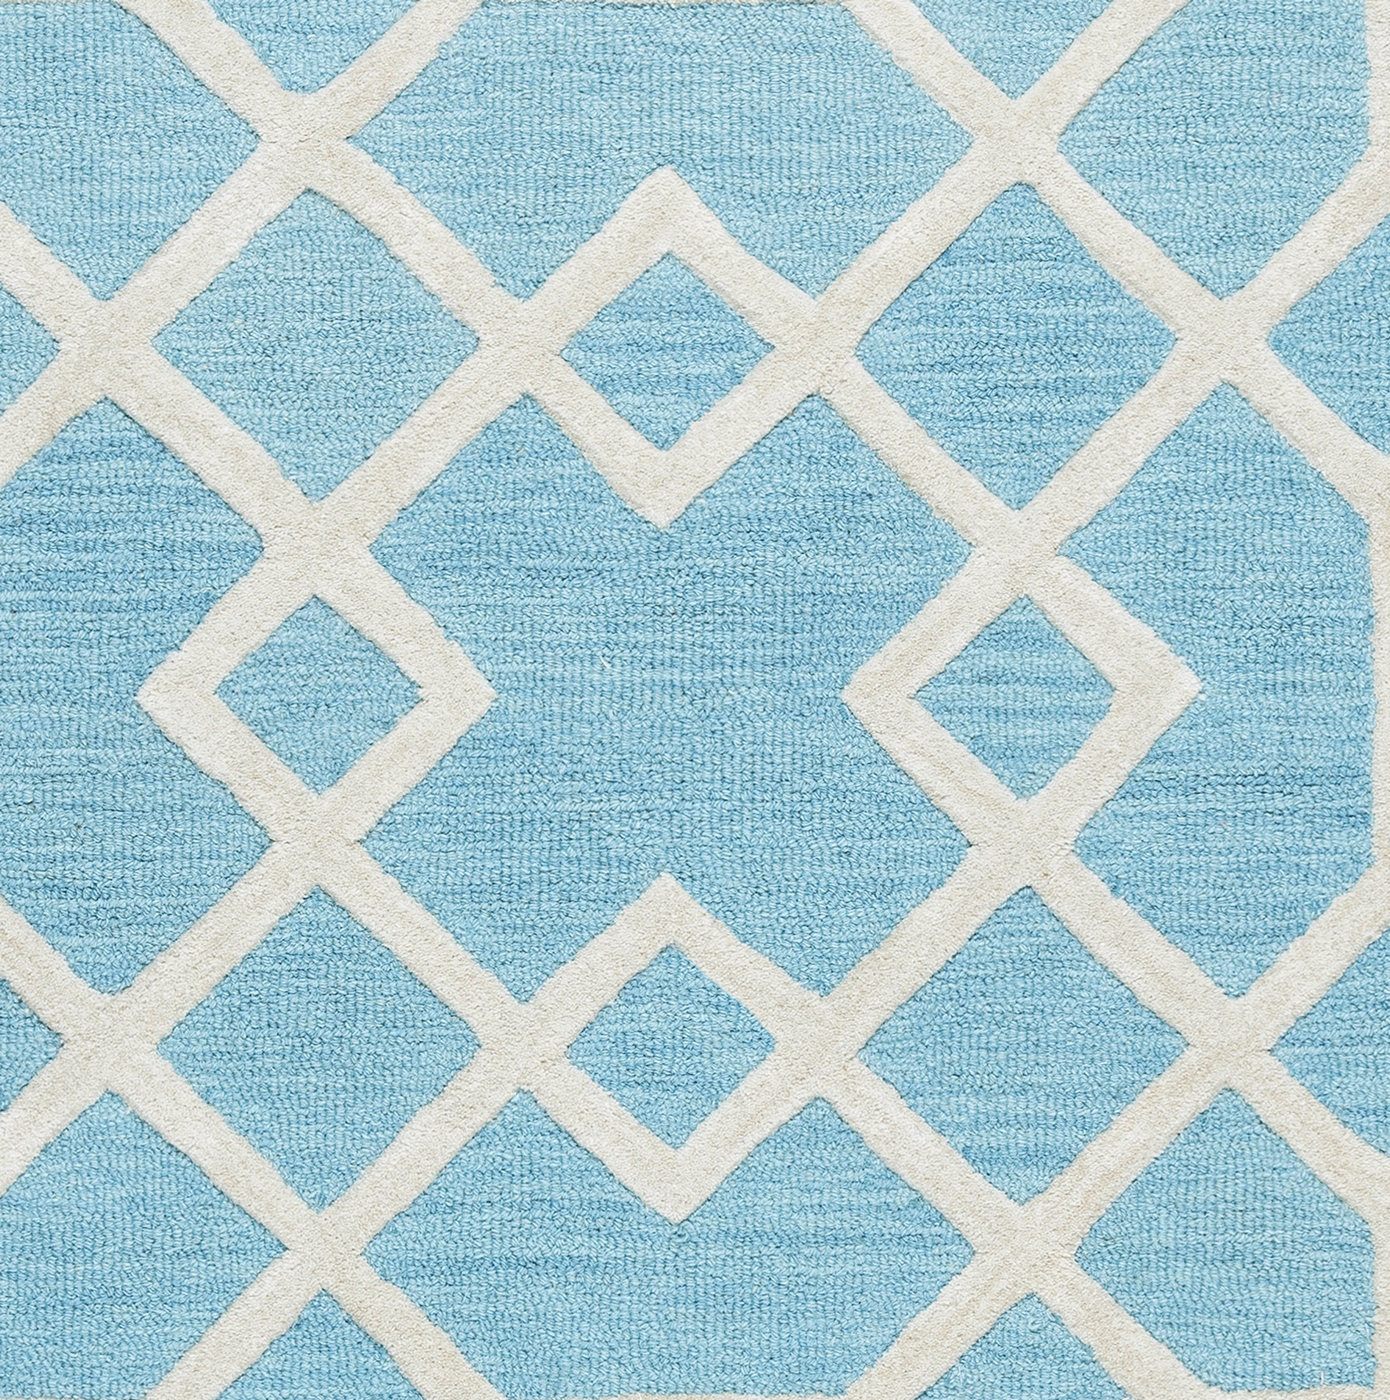 Royal Blue And White Trellis Rug: Caterine Geometric Trellis Wool Area Rug In Blue Off White